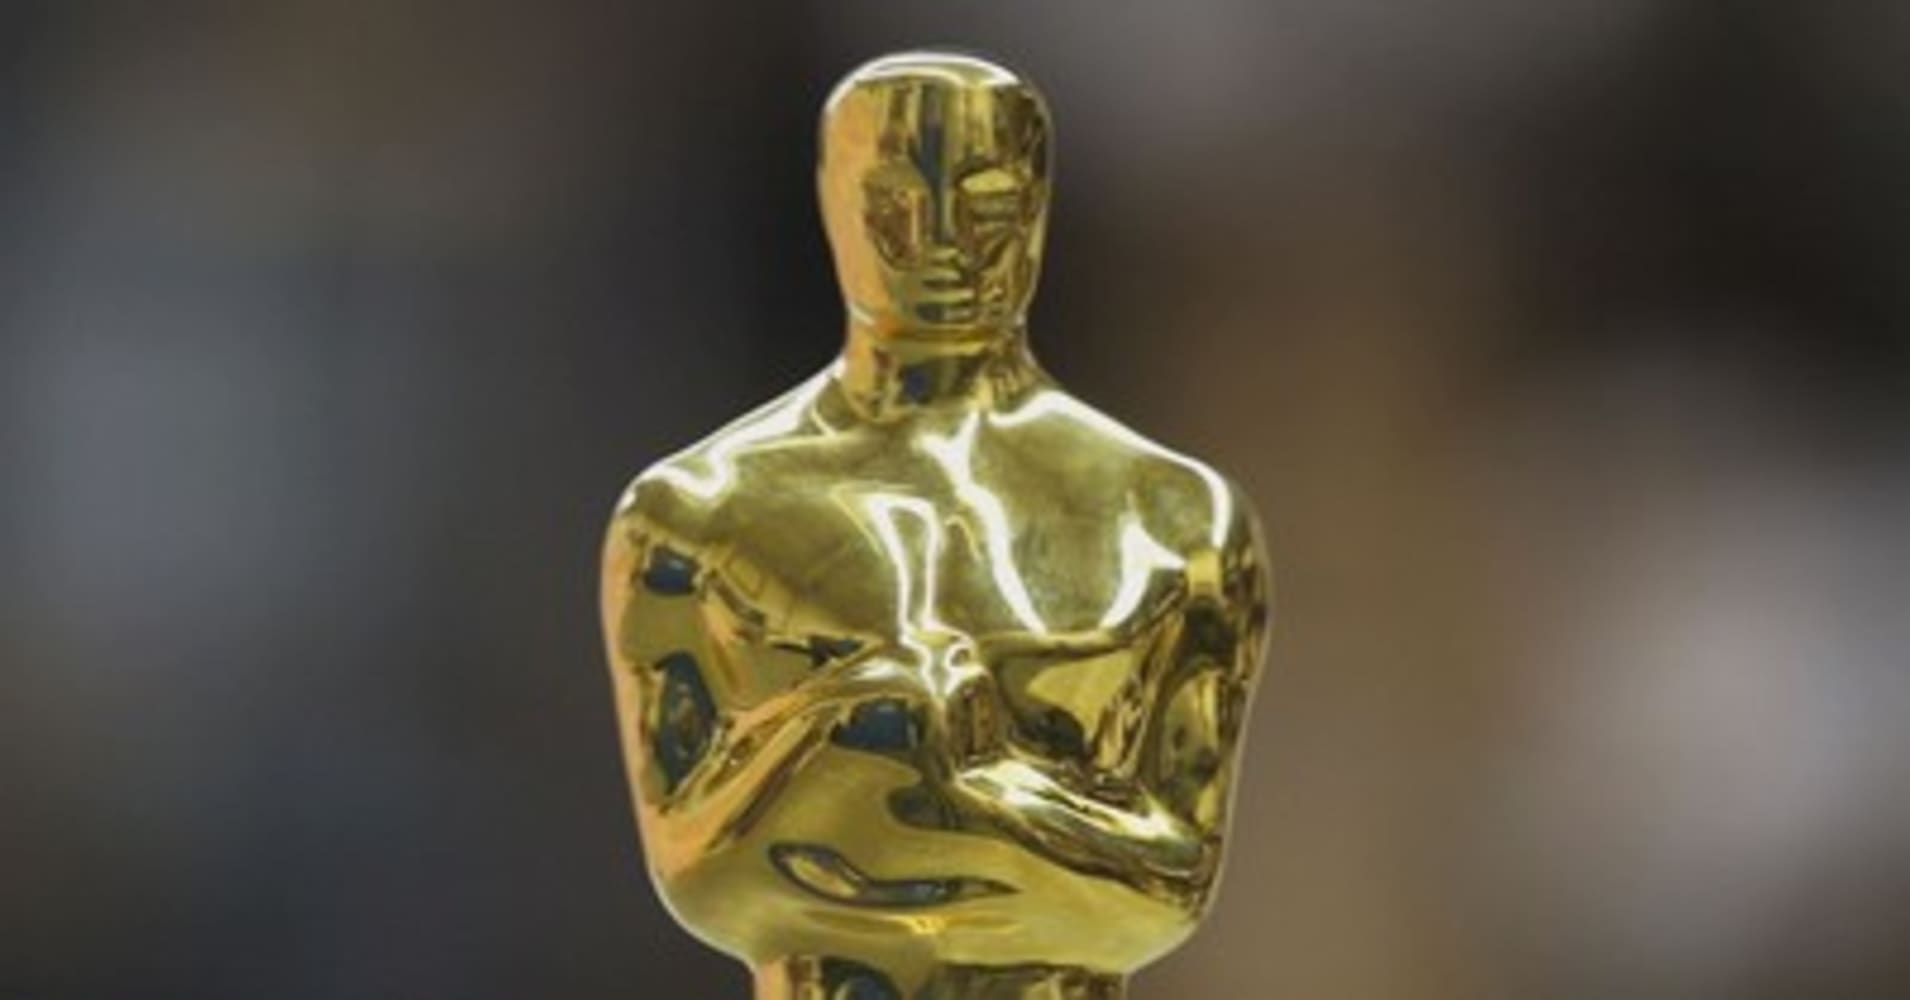 Meet the small business owner who makes the Oscars statuettes